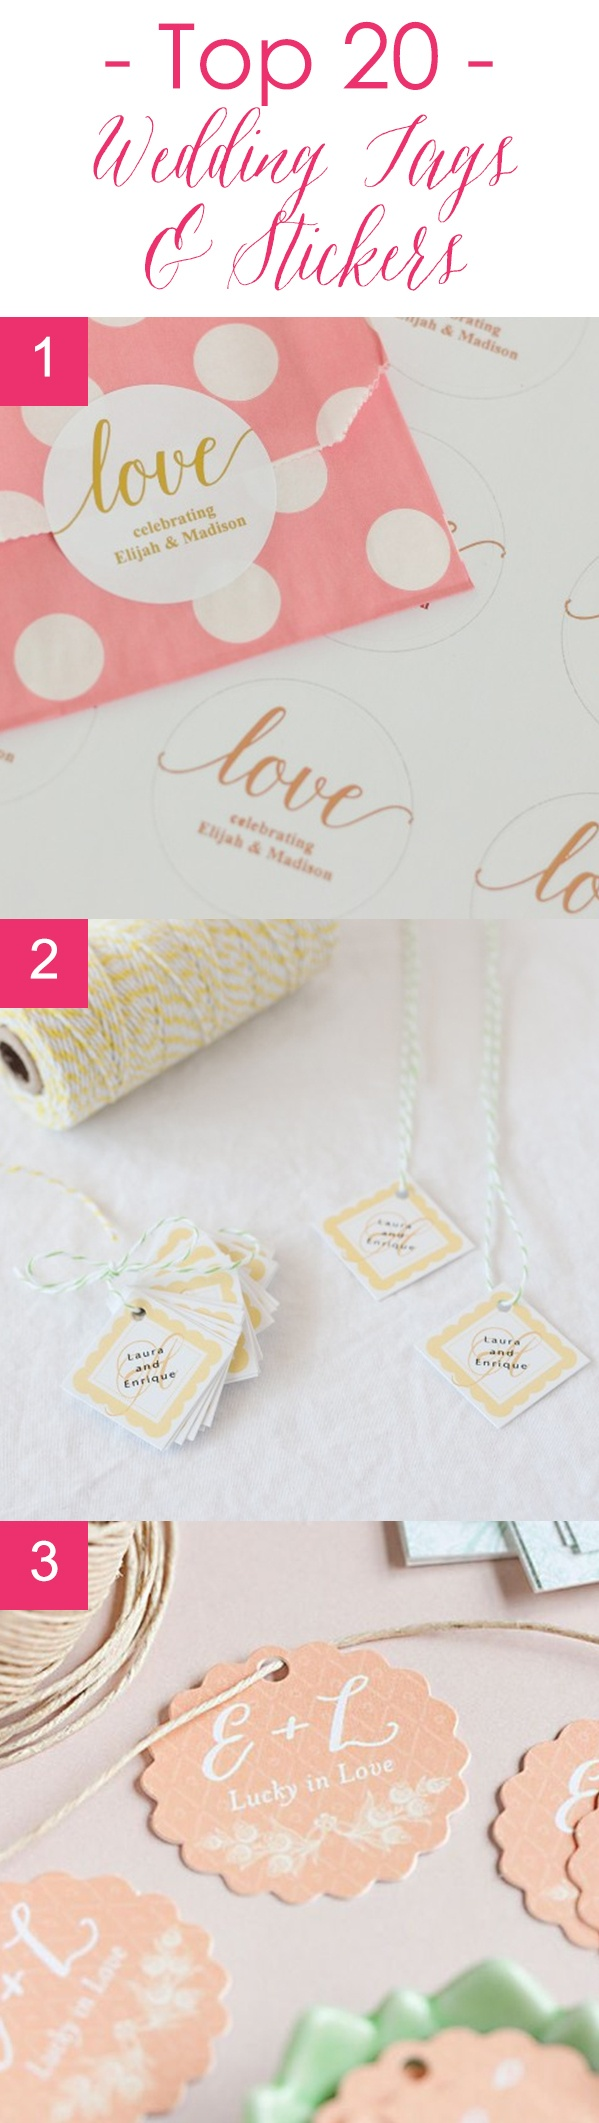 Top 20 Wedding Stickers & Tags | Beau-coup